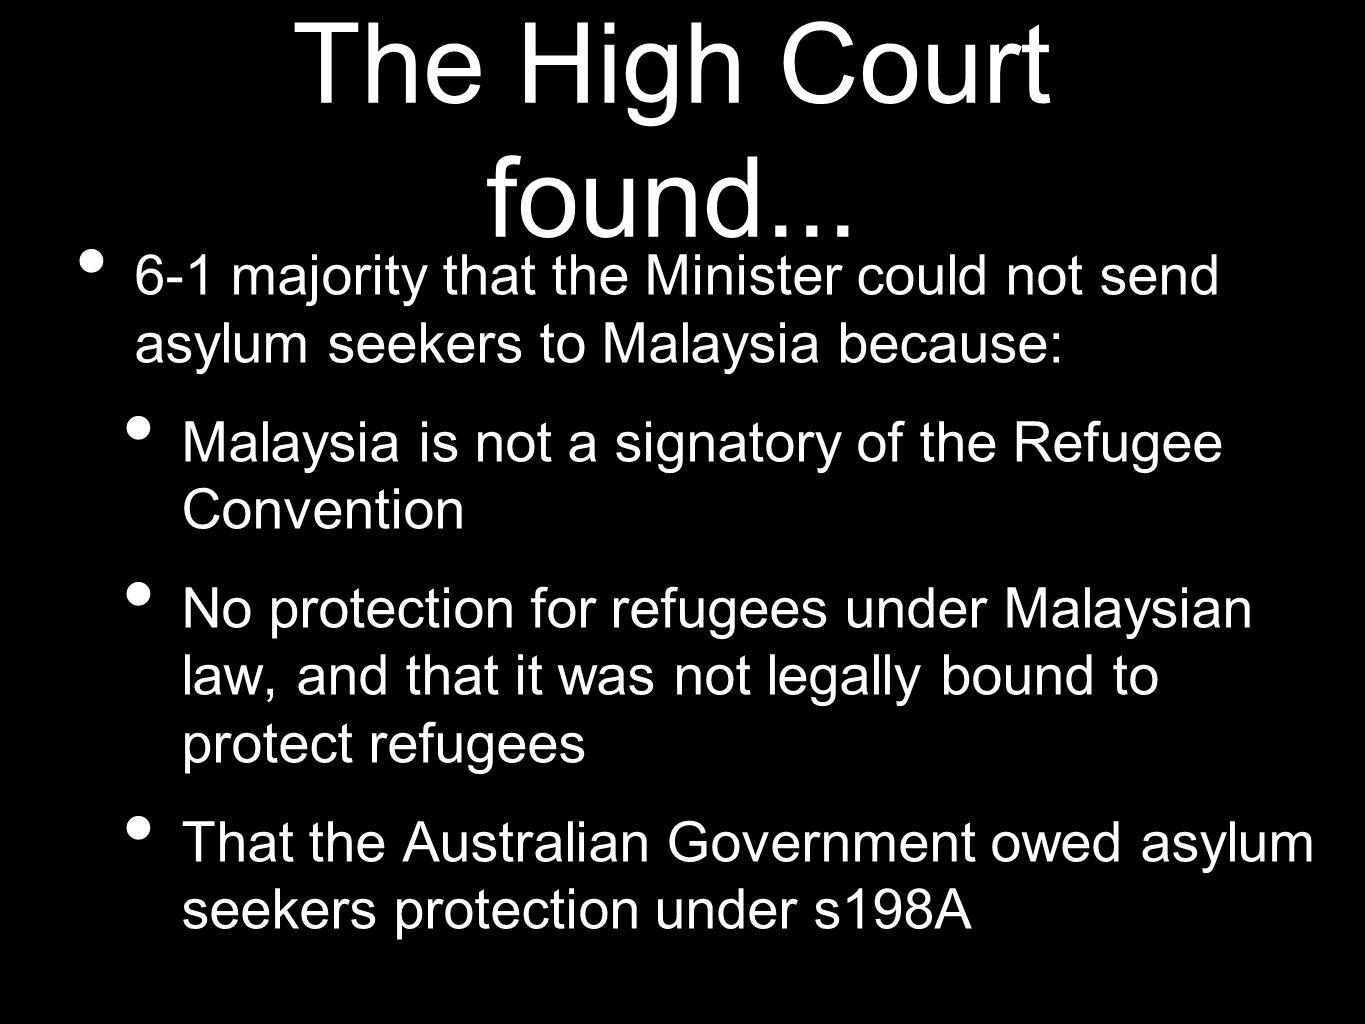 6-1 majority that the Minister could not send asylum seekers to Malaysia because: Malaysia is not a signatory of the Refugee Convention No protection